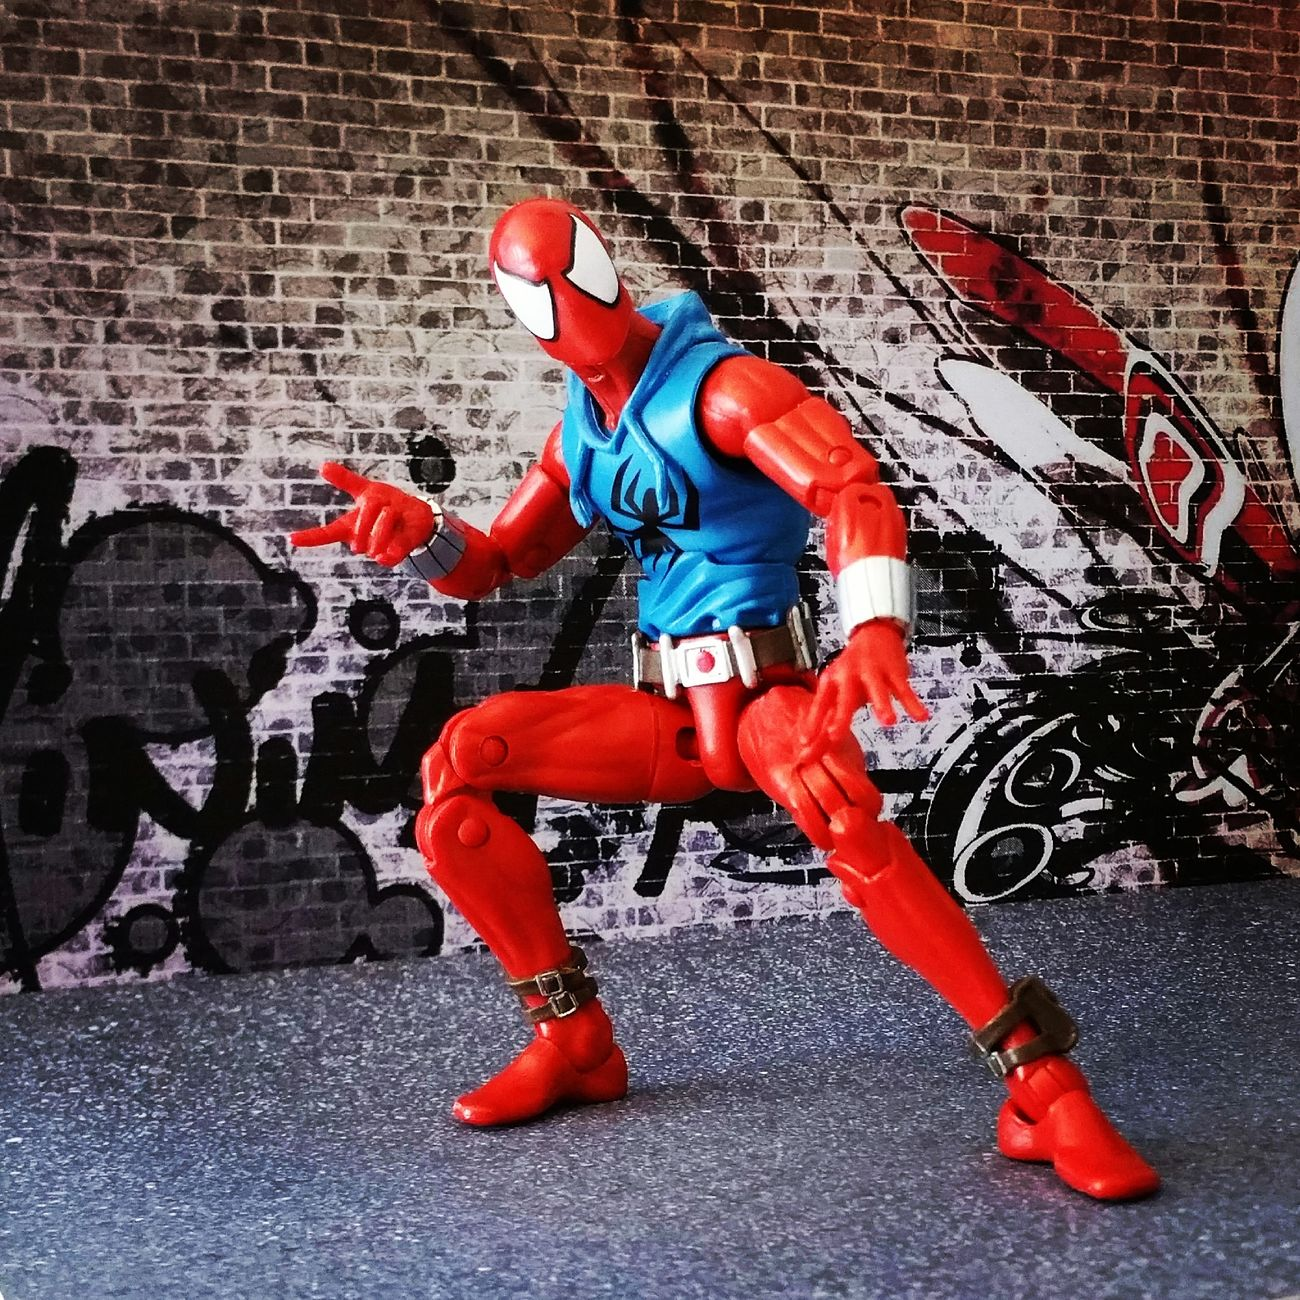 """Scarlet Spider at your service."" Marvellegends Marvellegendscommunity Marvel Scarletspider Benreilly Spiderman Peterparker Spiderverse Marveluniverse Marvelcomics Toyphotography Toycrewbuddies Hasbro ACBA Articulatedcomicbookart Marvelactionfigure Actionfigure"